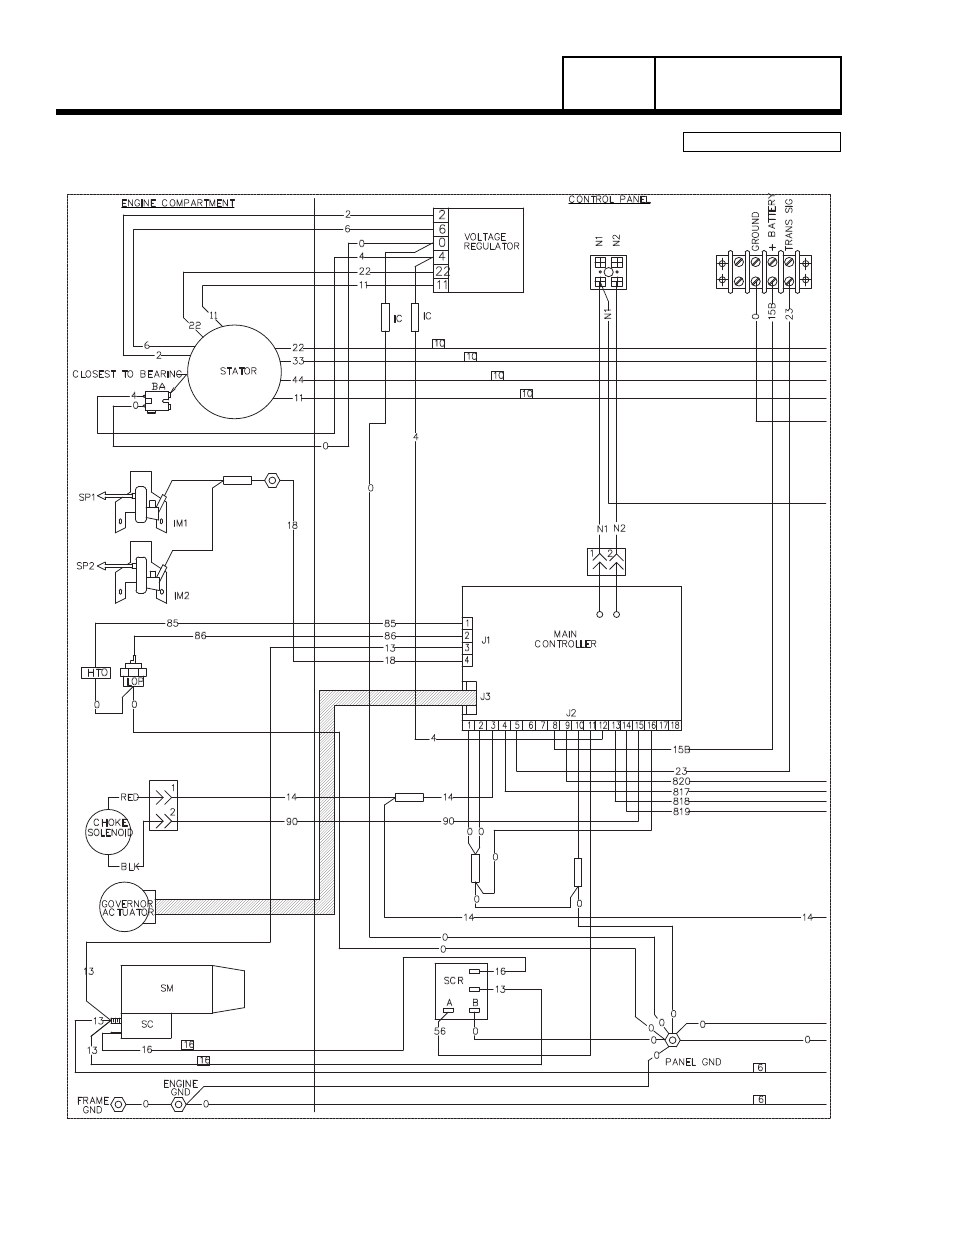 Generac 8kw Wiring Diagram Change Your Idea With Diagrams For Transfer Switches 17 Kw Home Standby Group G Part 7 Power Rh Manualsdir Com Portable